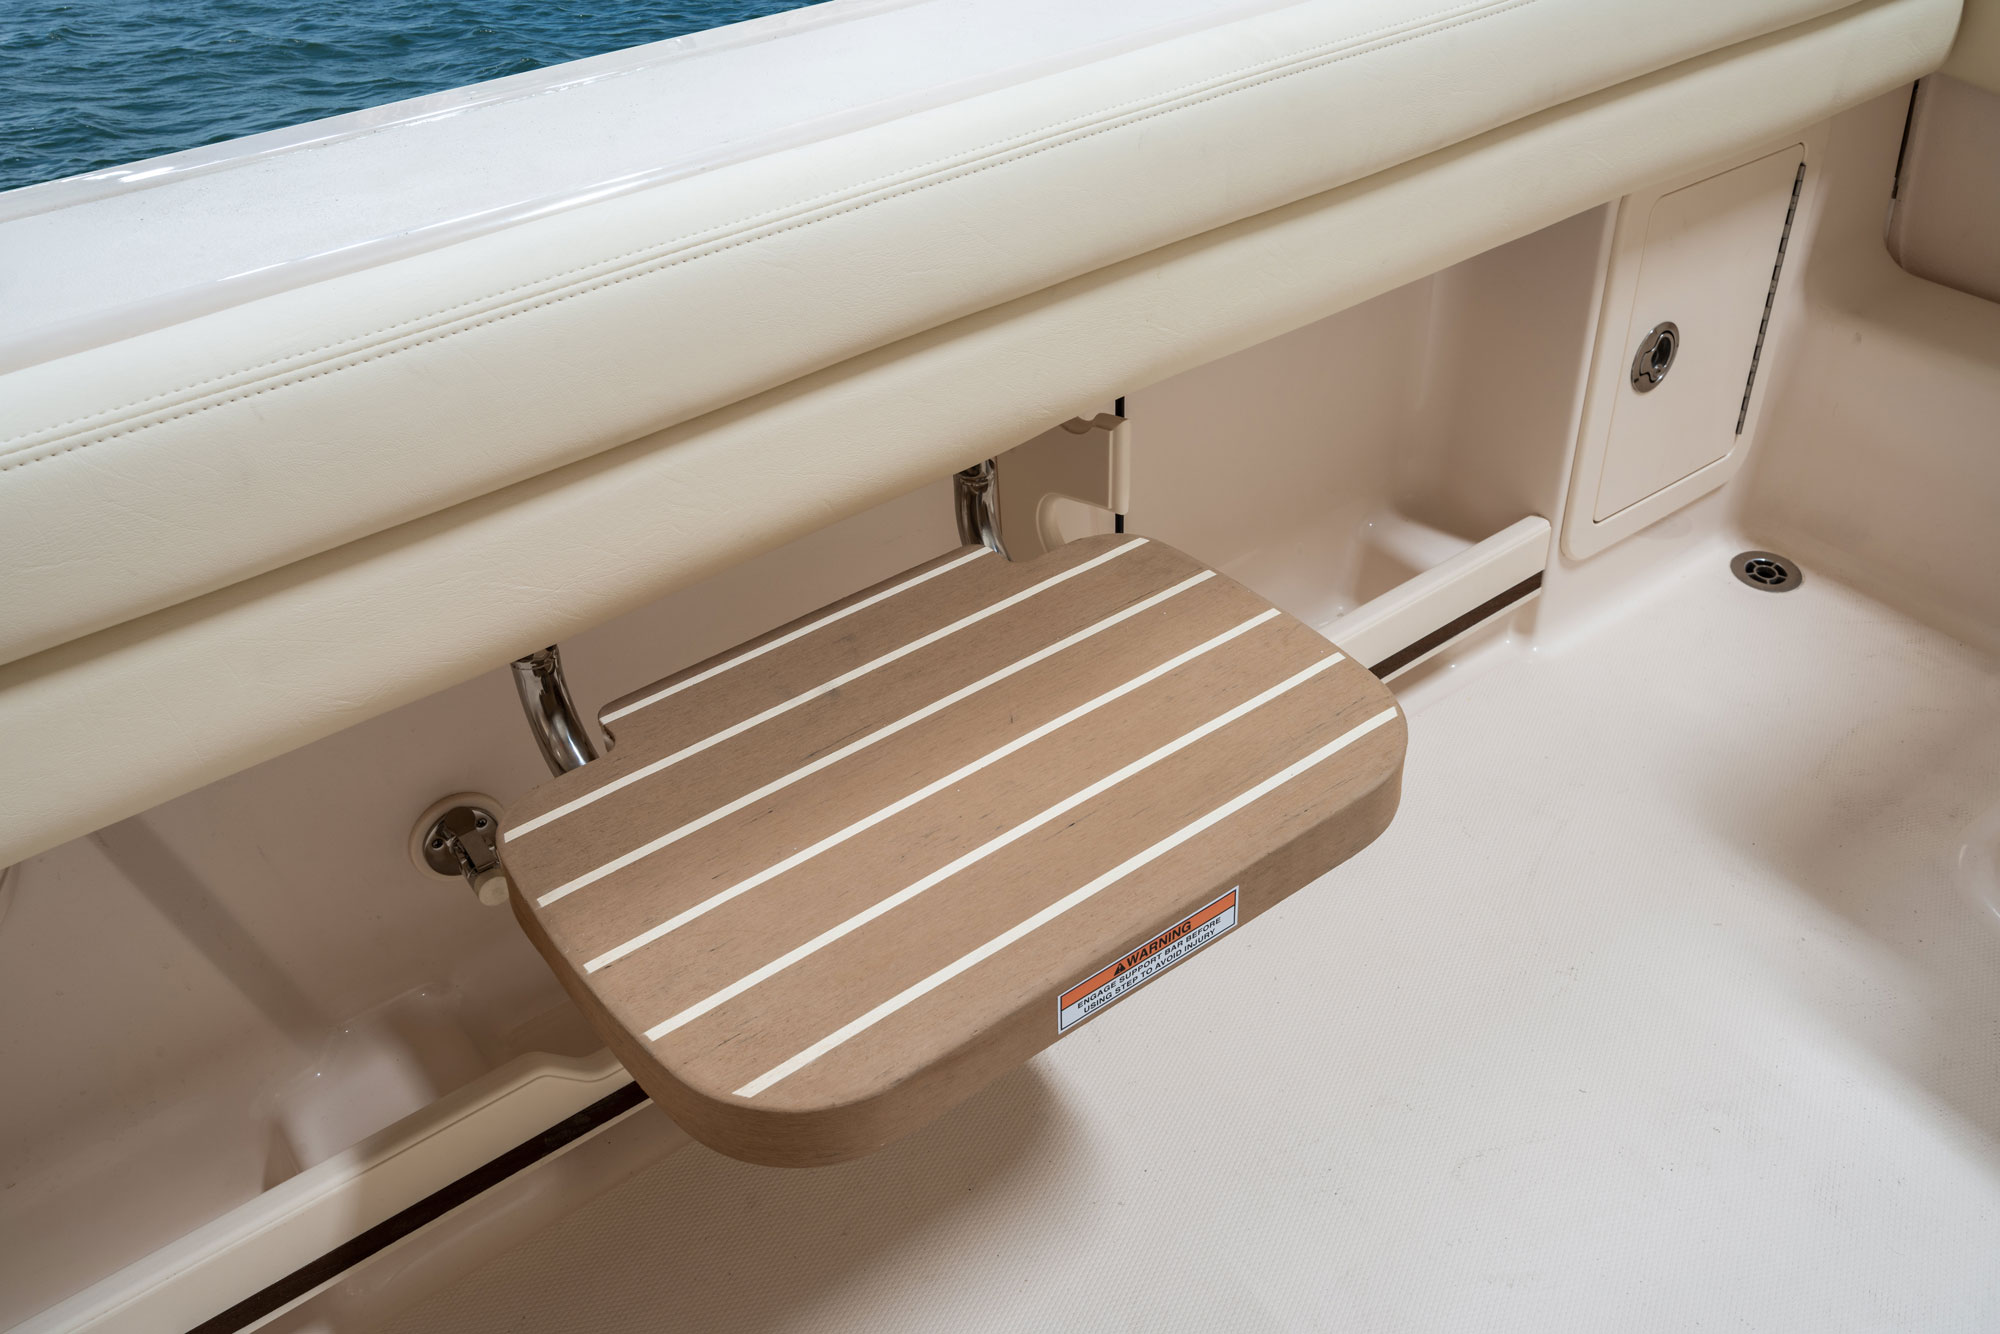 Grady-White Freedom 235 23-foot dual console cockpit step